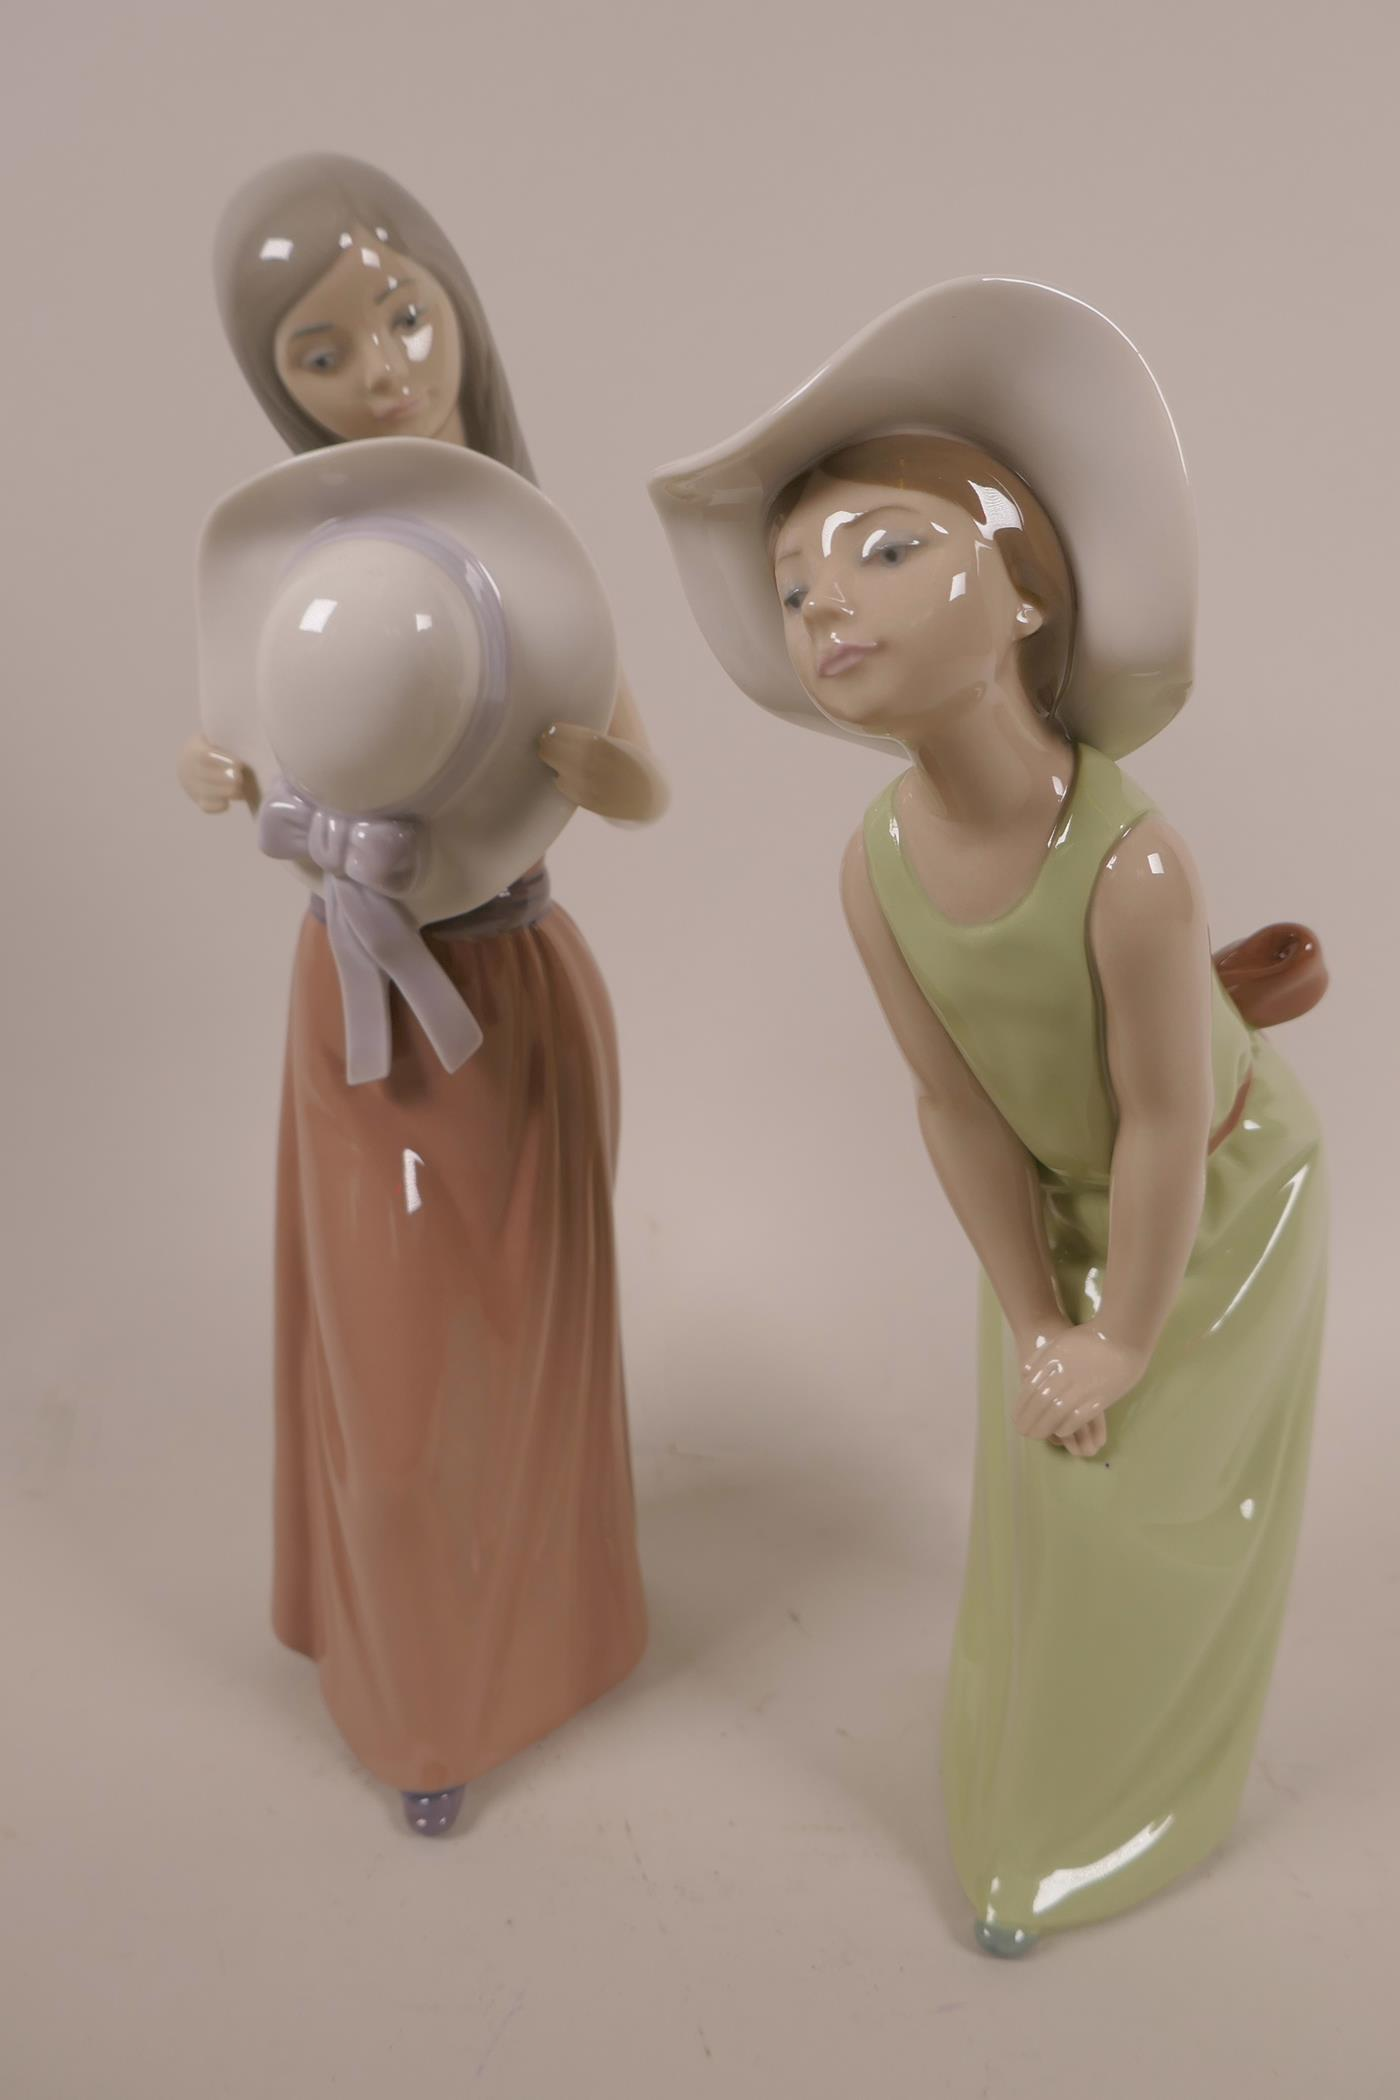 Lot 11 - Two Lladro figurines, 'Curious Girl with Straw Hat', #5009, and the other 'Bashful Girl with Straw